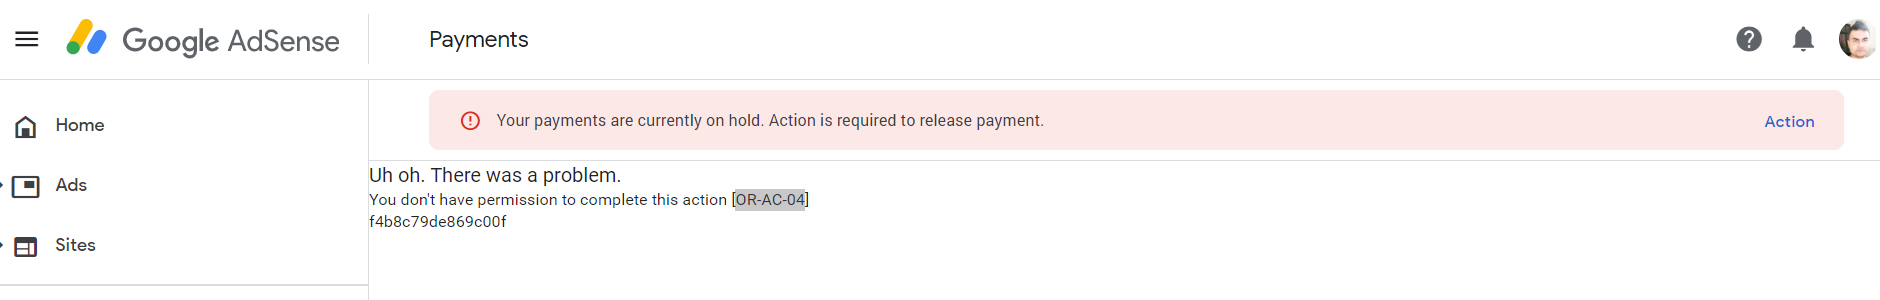 "How to Fix AdSense Payment Error ""You don't have permission to complete this action [OR-AC-04]""?"